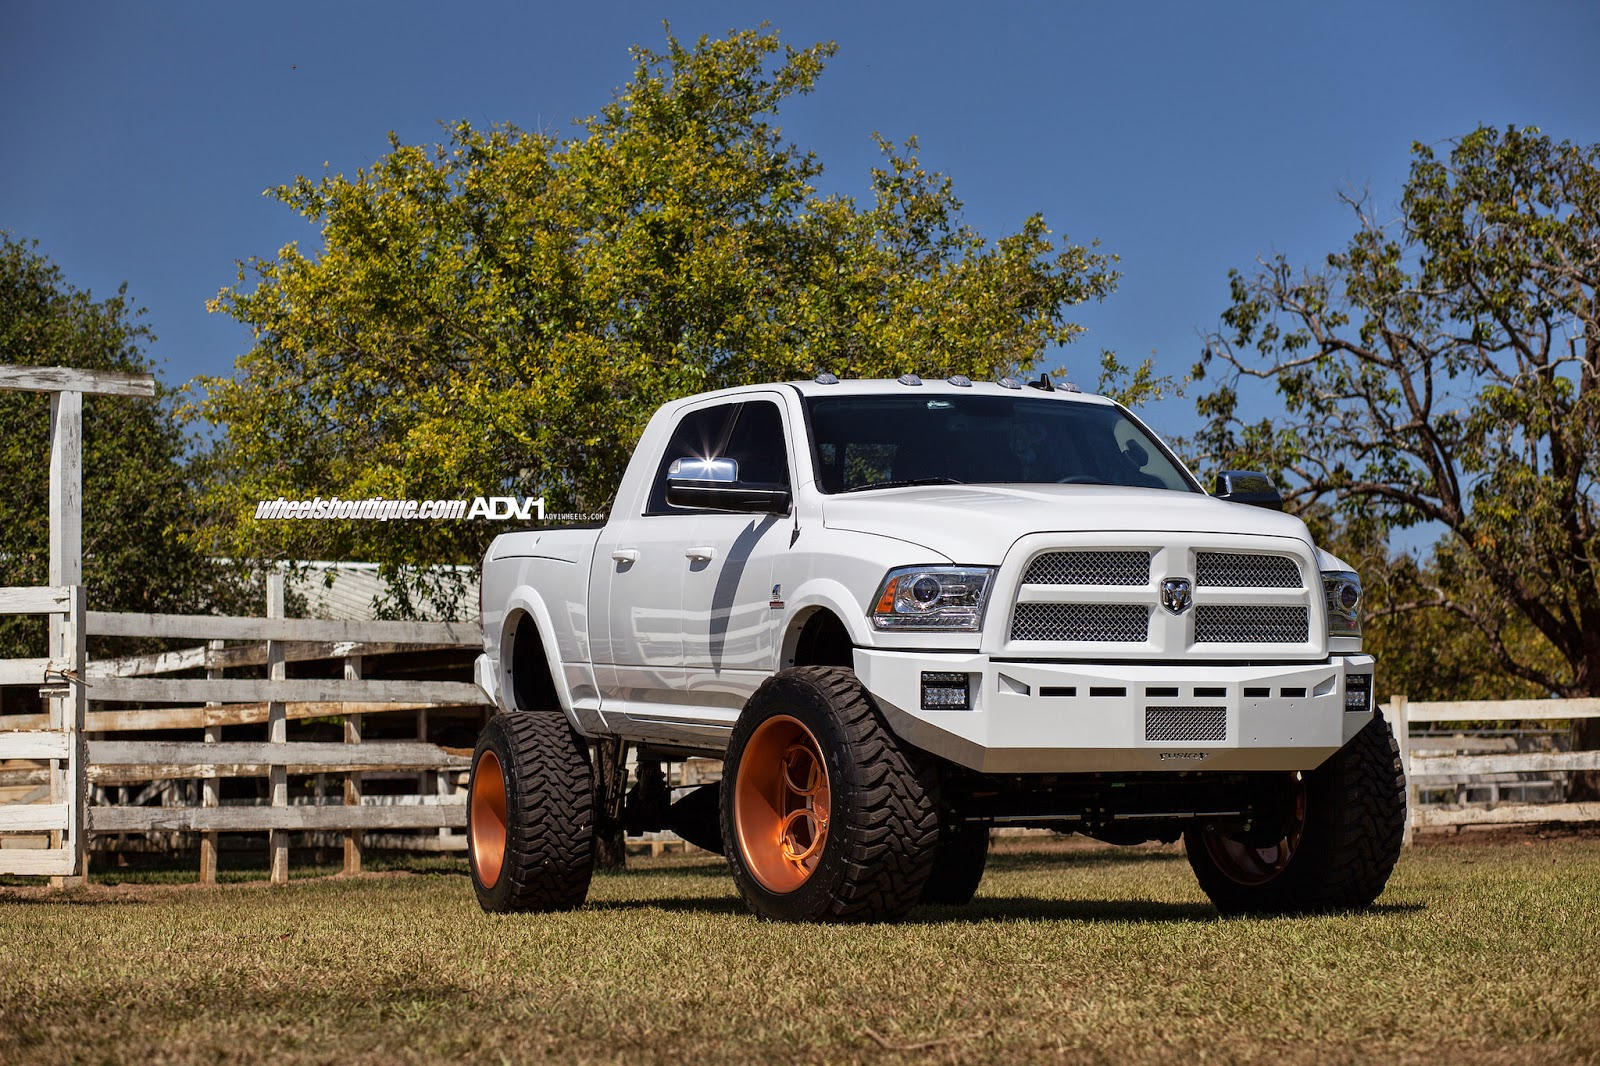 supercars show dodge ram 2500 4x4 on adv05c truck spec hd by. Black Bedroom Furniture Sets. Home Design Ideas